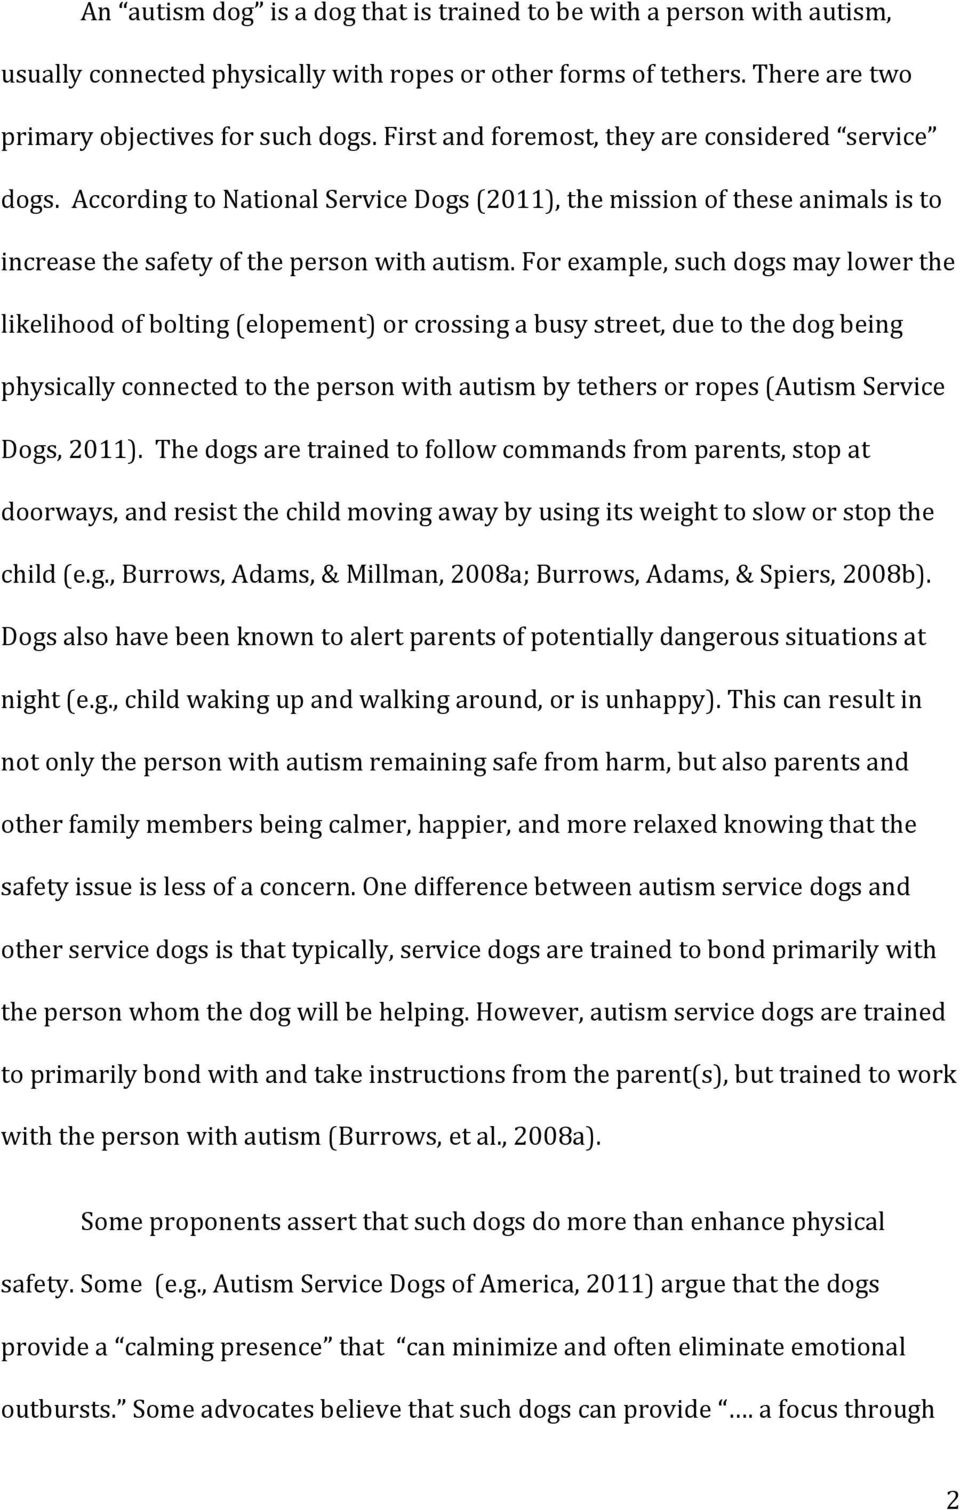 For example, such dogs may lower the likelihood of bolting (elopement) or crossing a busy street, due to the dog being physically connected to the person with autism by tethers or ropes (Autism